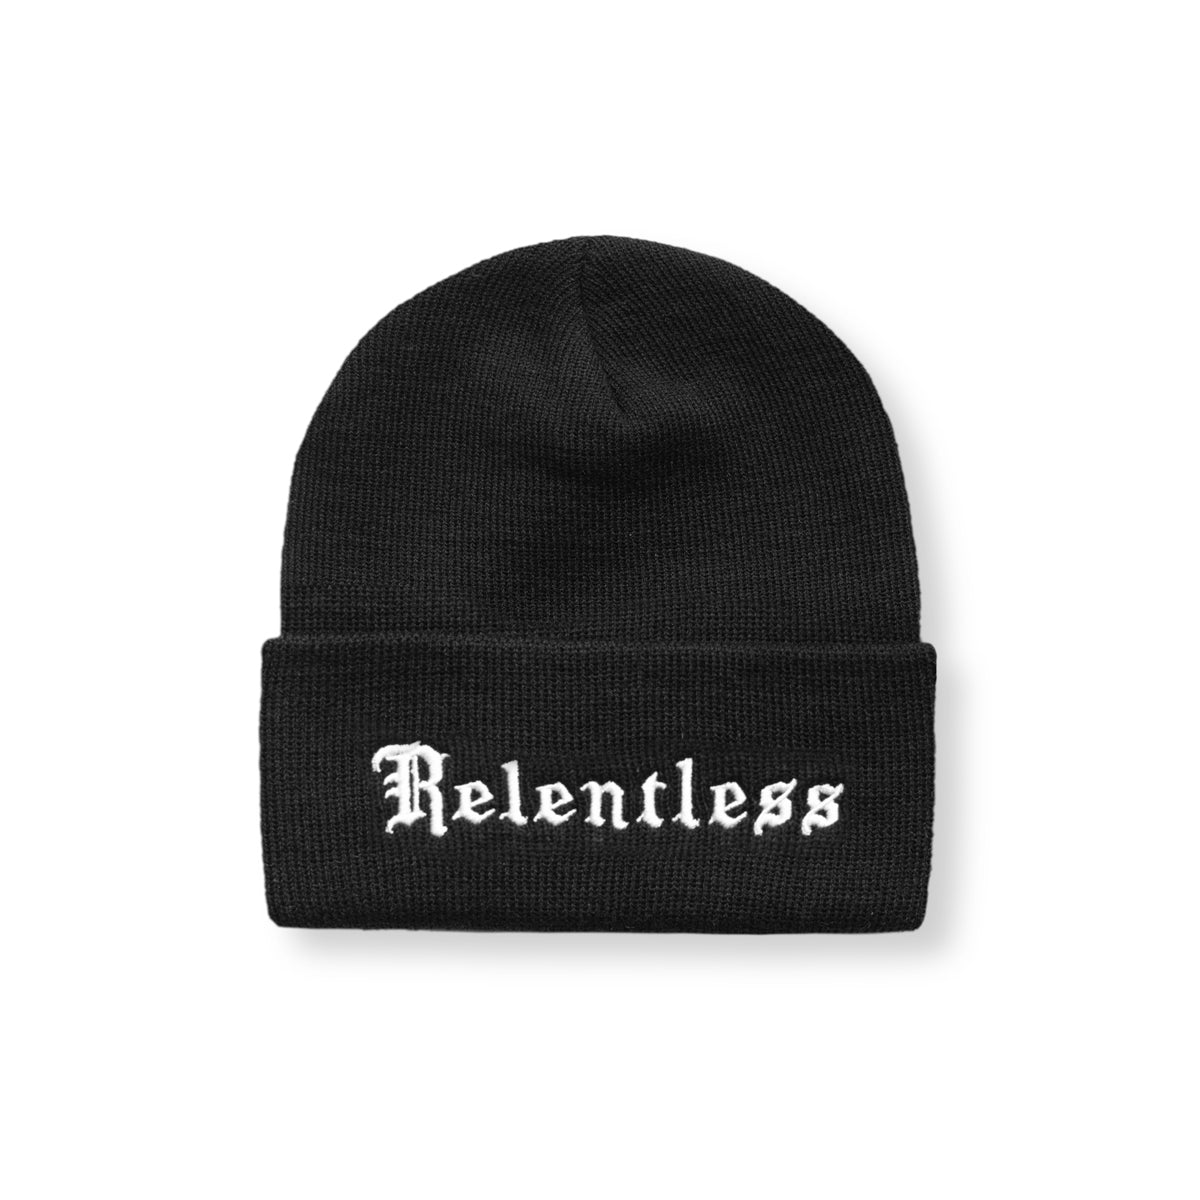 "Thermal Wool ""Relentless Pursuit"" Beanie - Black/White"